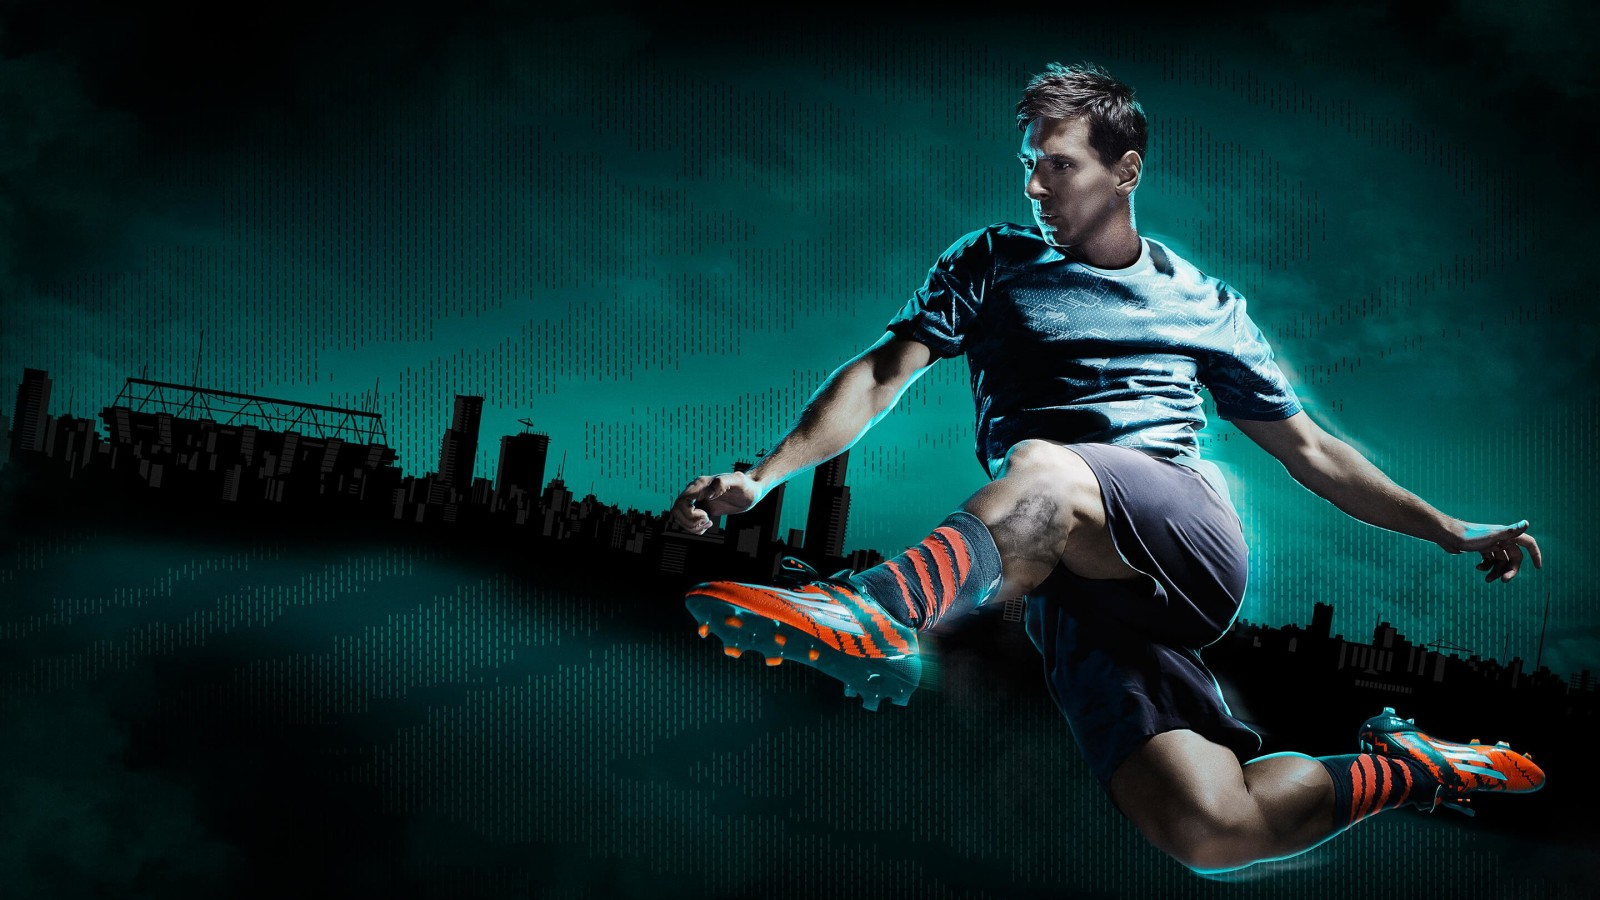 Lionel Messi Adidas Commercial Wallpaper for Desktop 1600x900